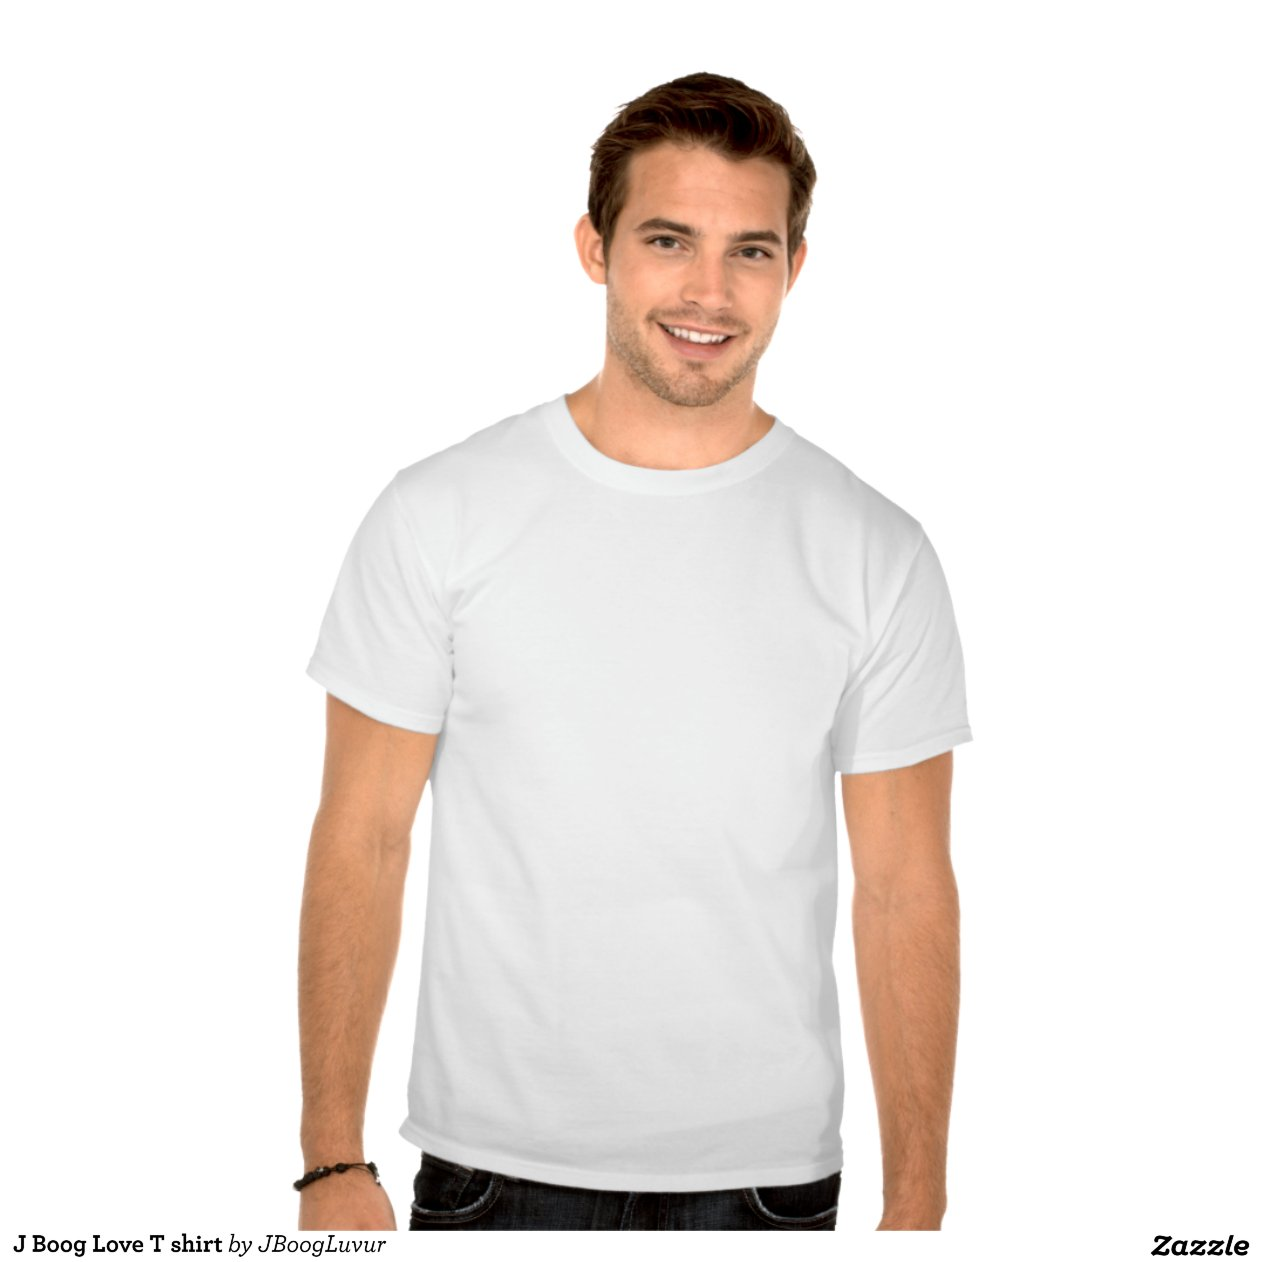 J Boog Love T shirt  Zazzle  J Boog Instagram